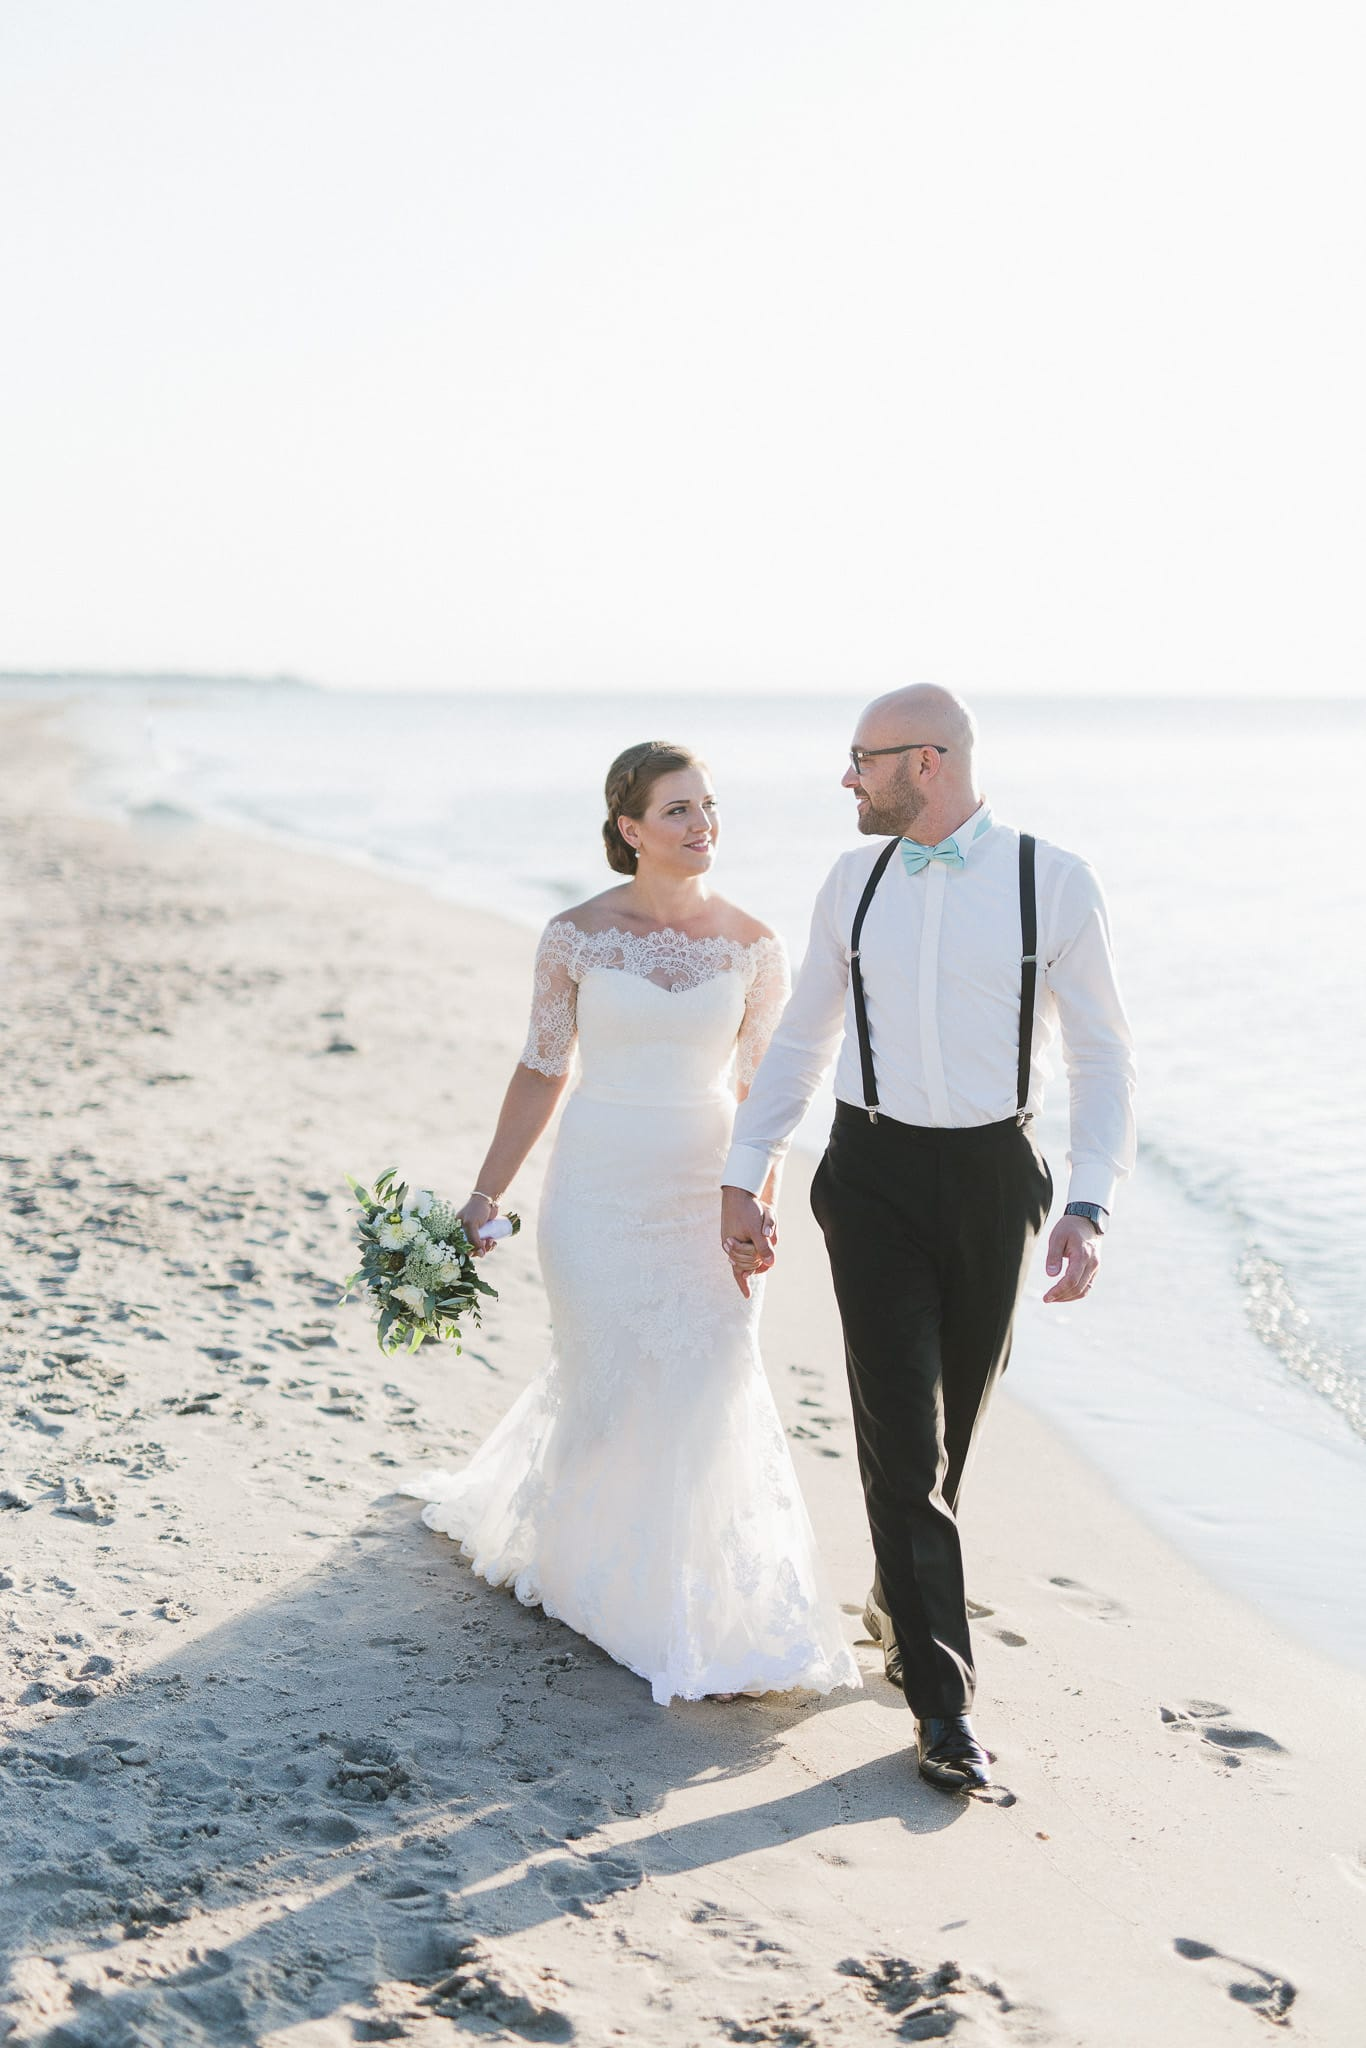 After Wedding Shooting Ostsee 19